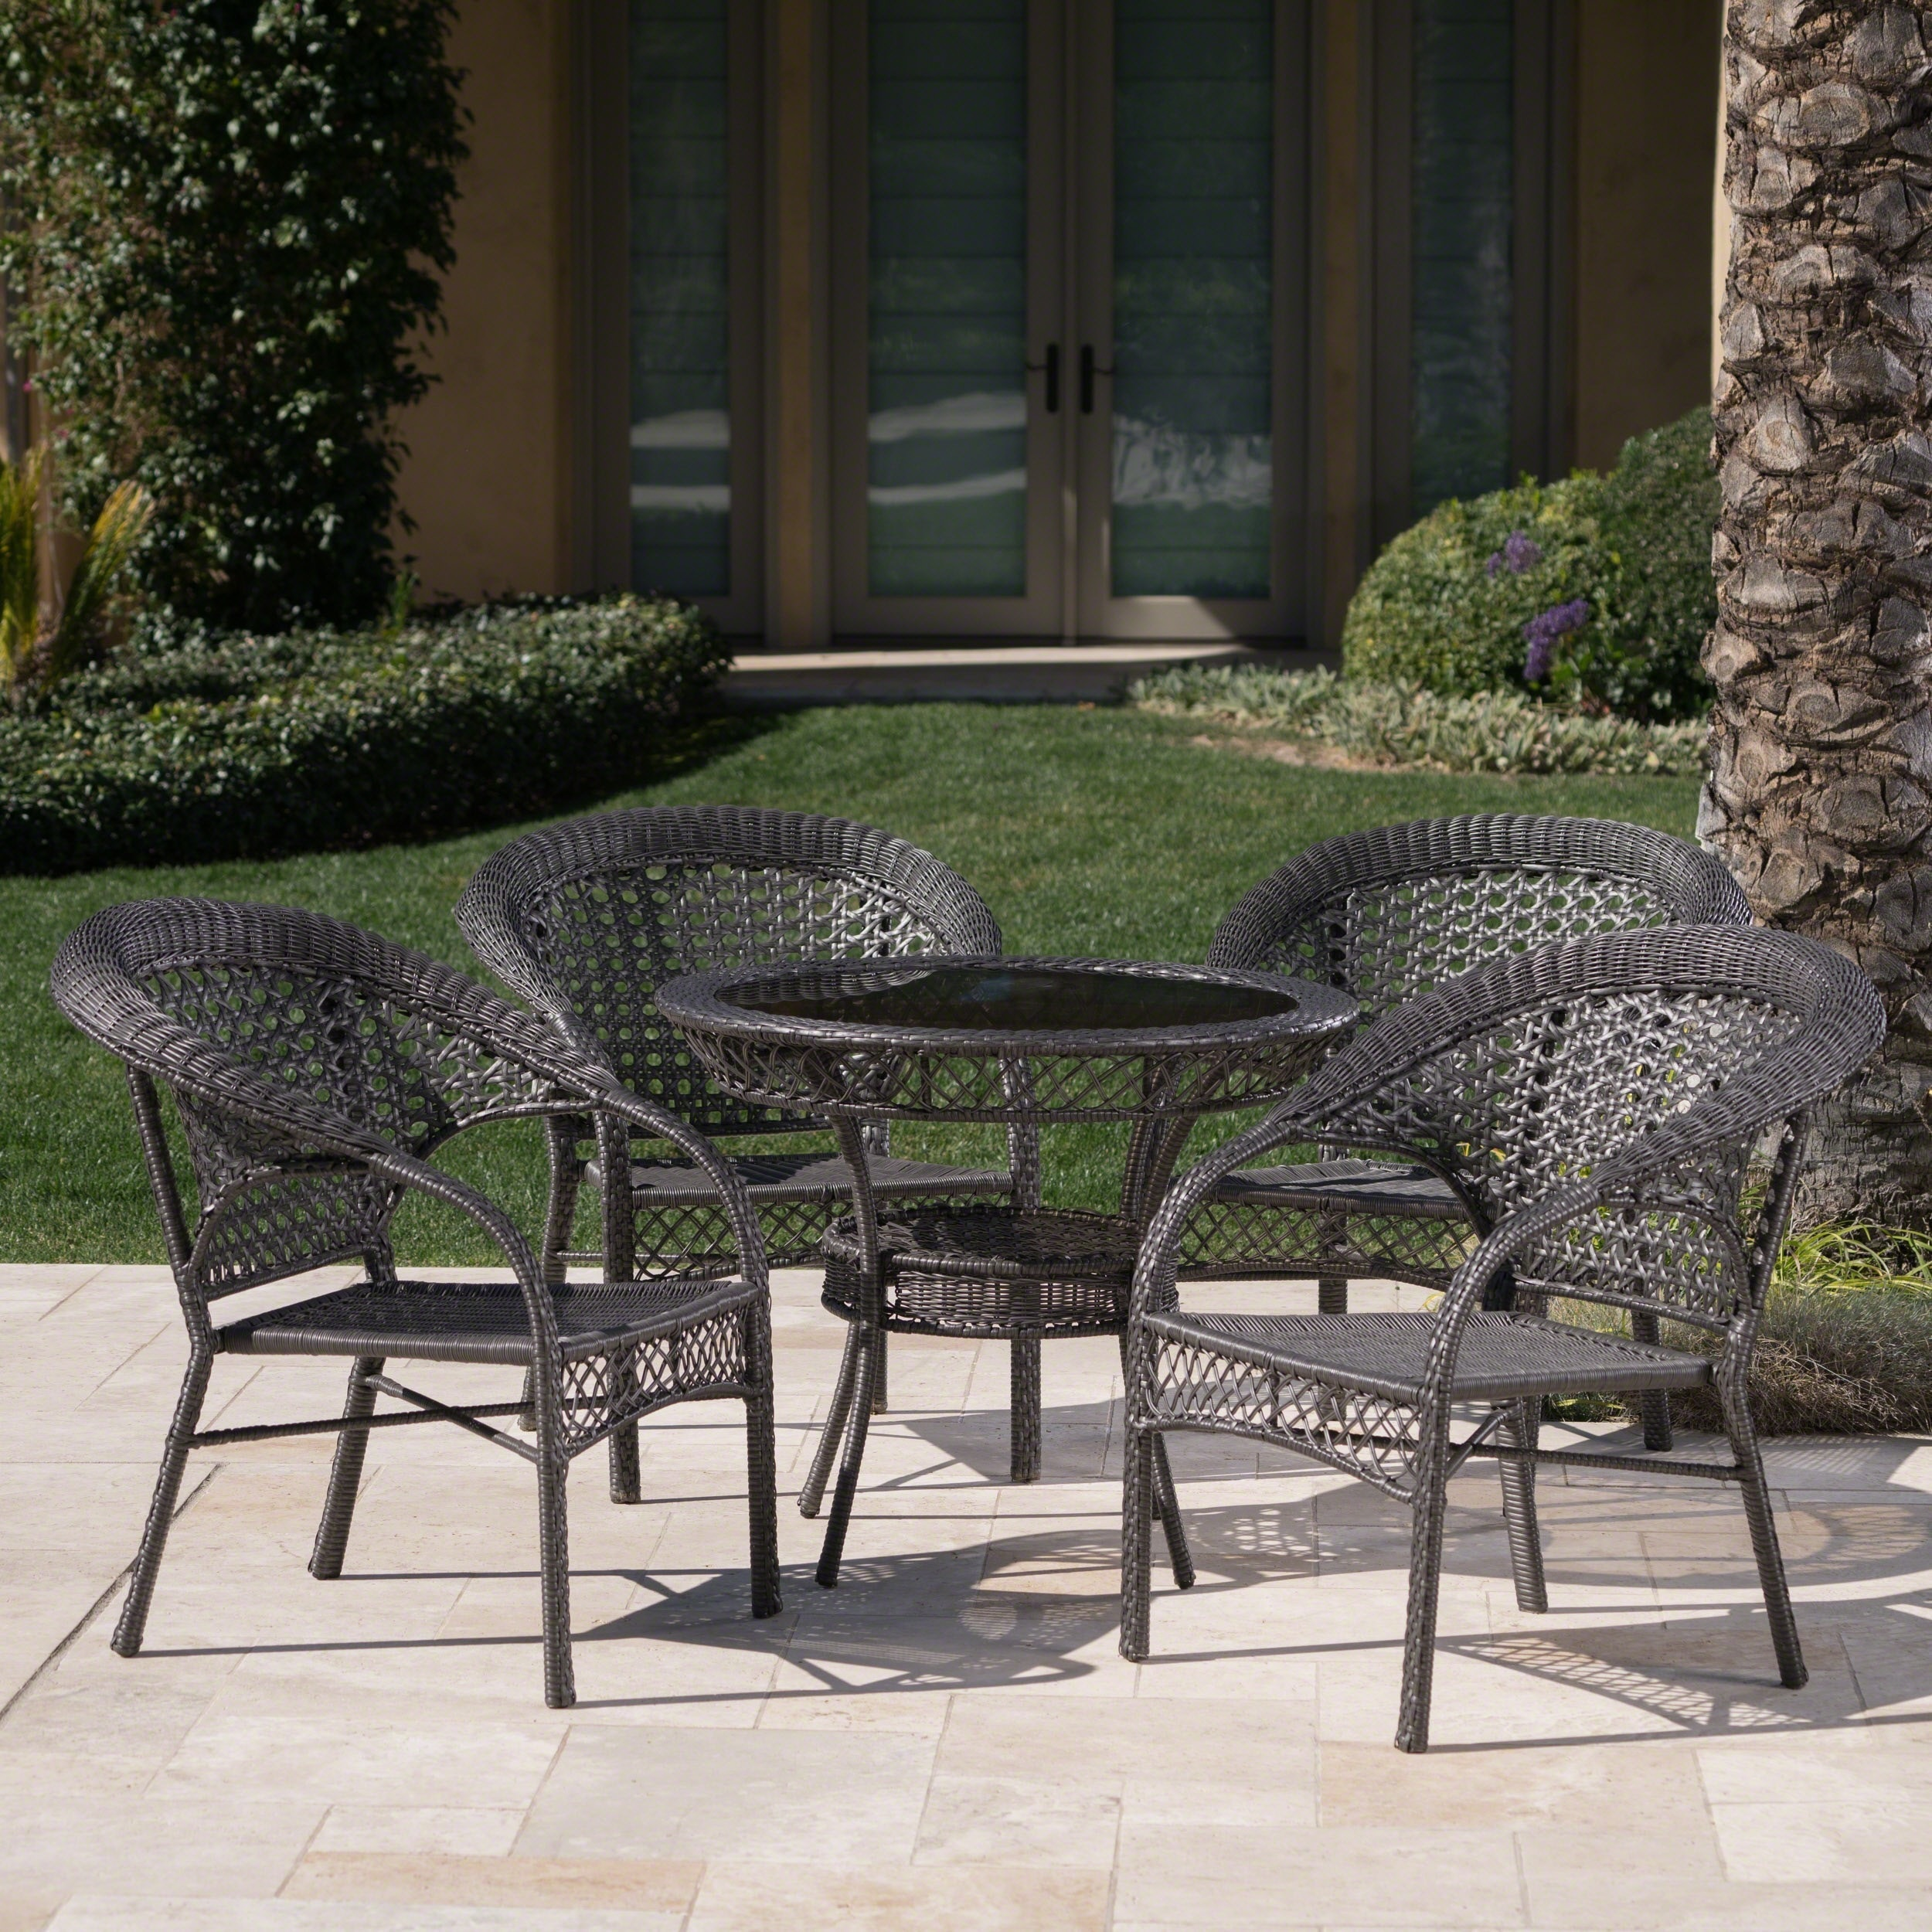 Outdoor 5 Piece Wicker Dining Bistro Table Set By Christopher Knight Home    Free Shipping Today   Overstock   13464465